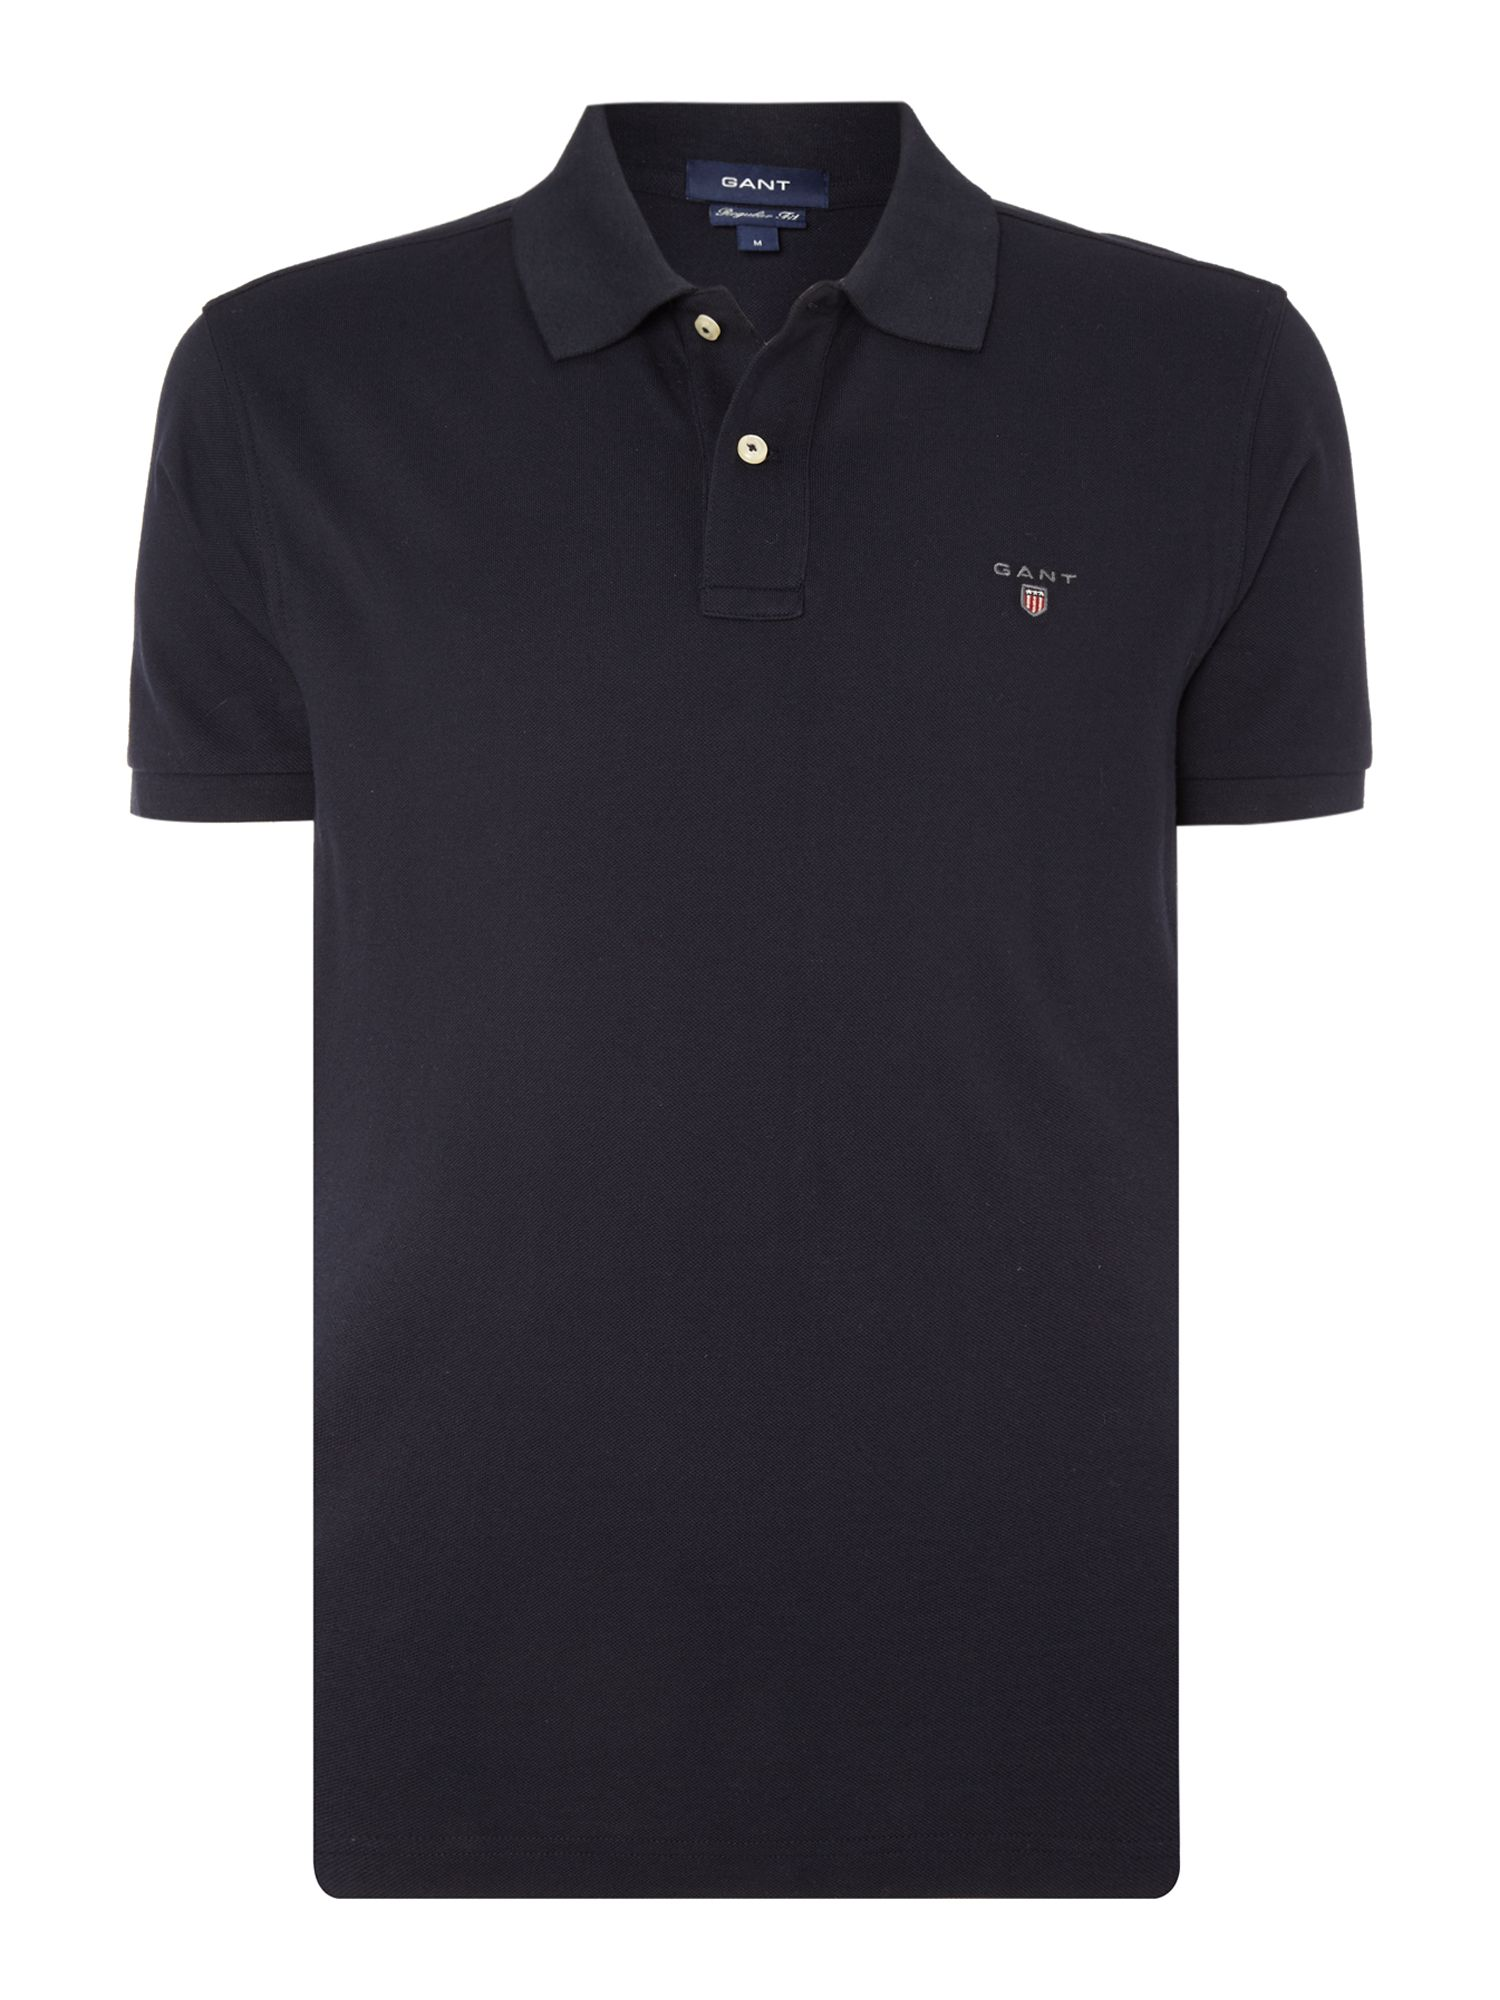 Men's Gant Pique Short Sleeve Polo Shirt, Blue